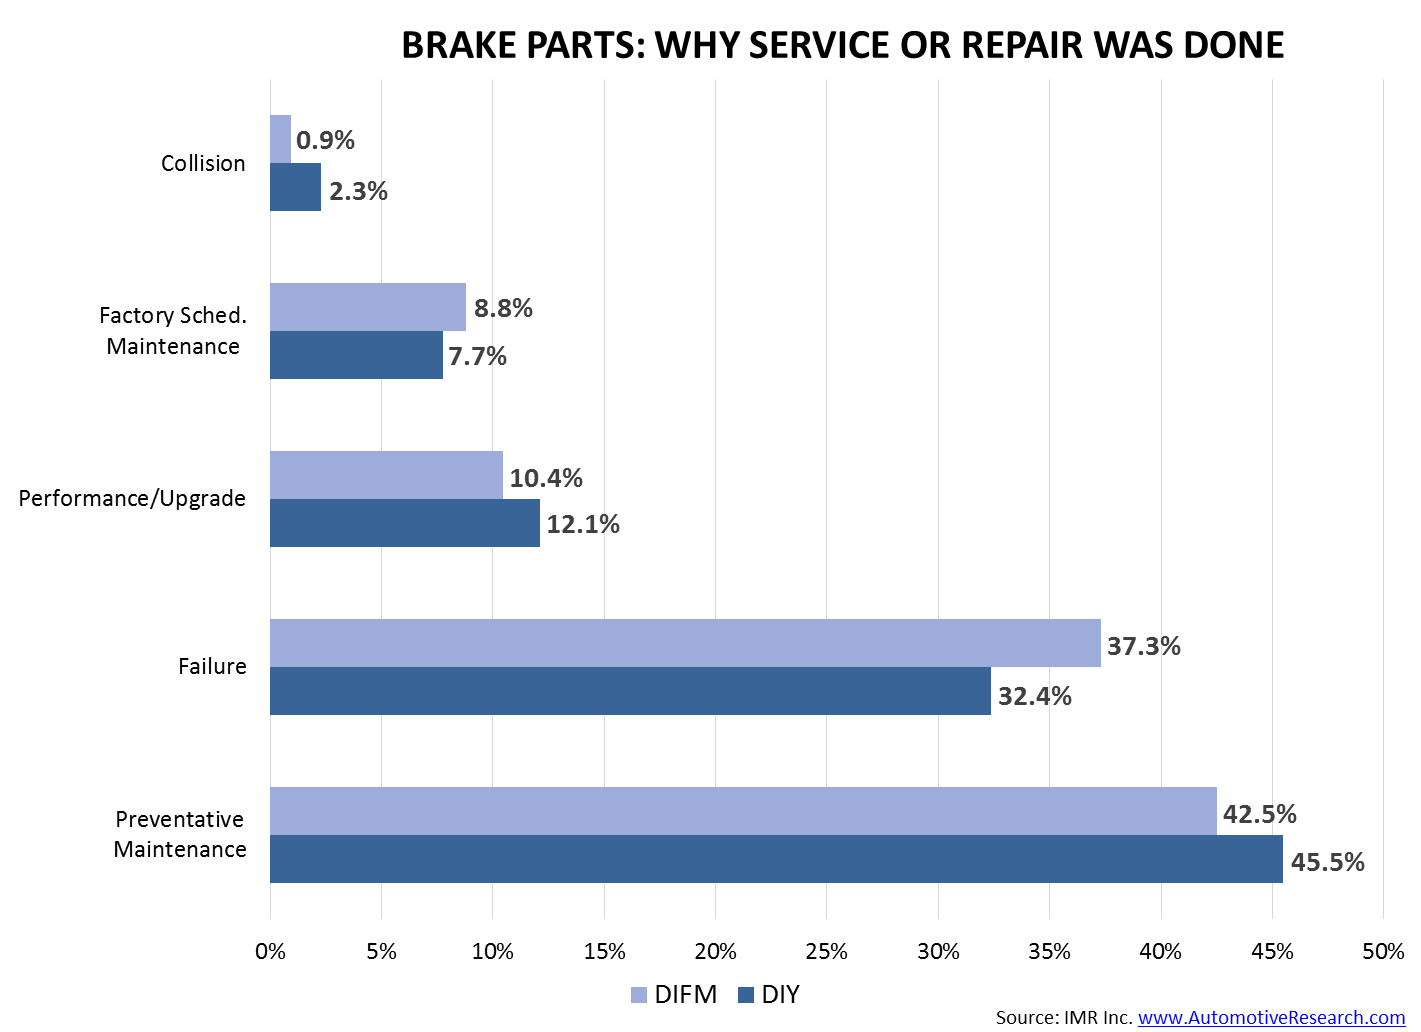 Brake Parts--Why Service or Repair Was Done